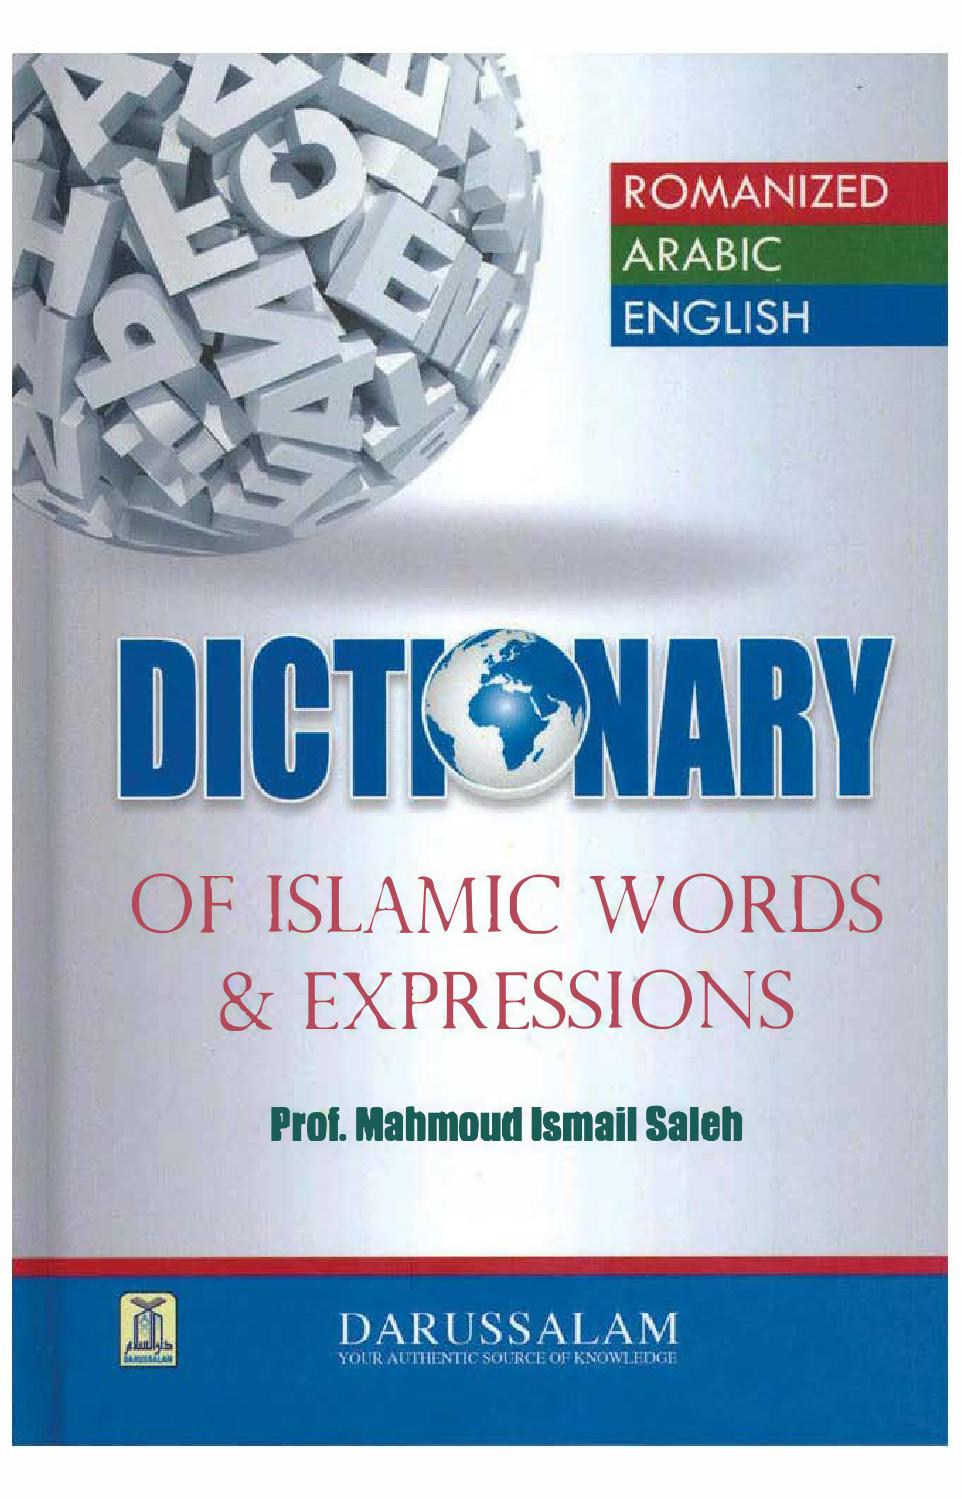 English dictionary of islamic words expressions by Mohamed